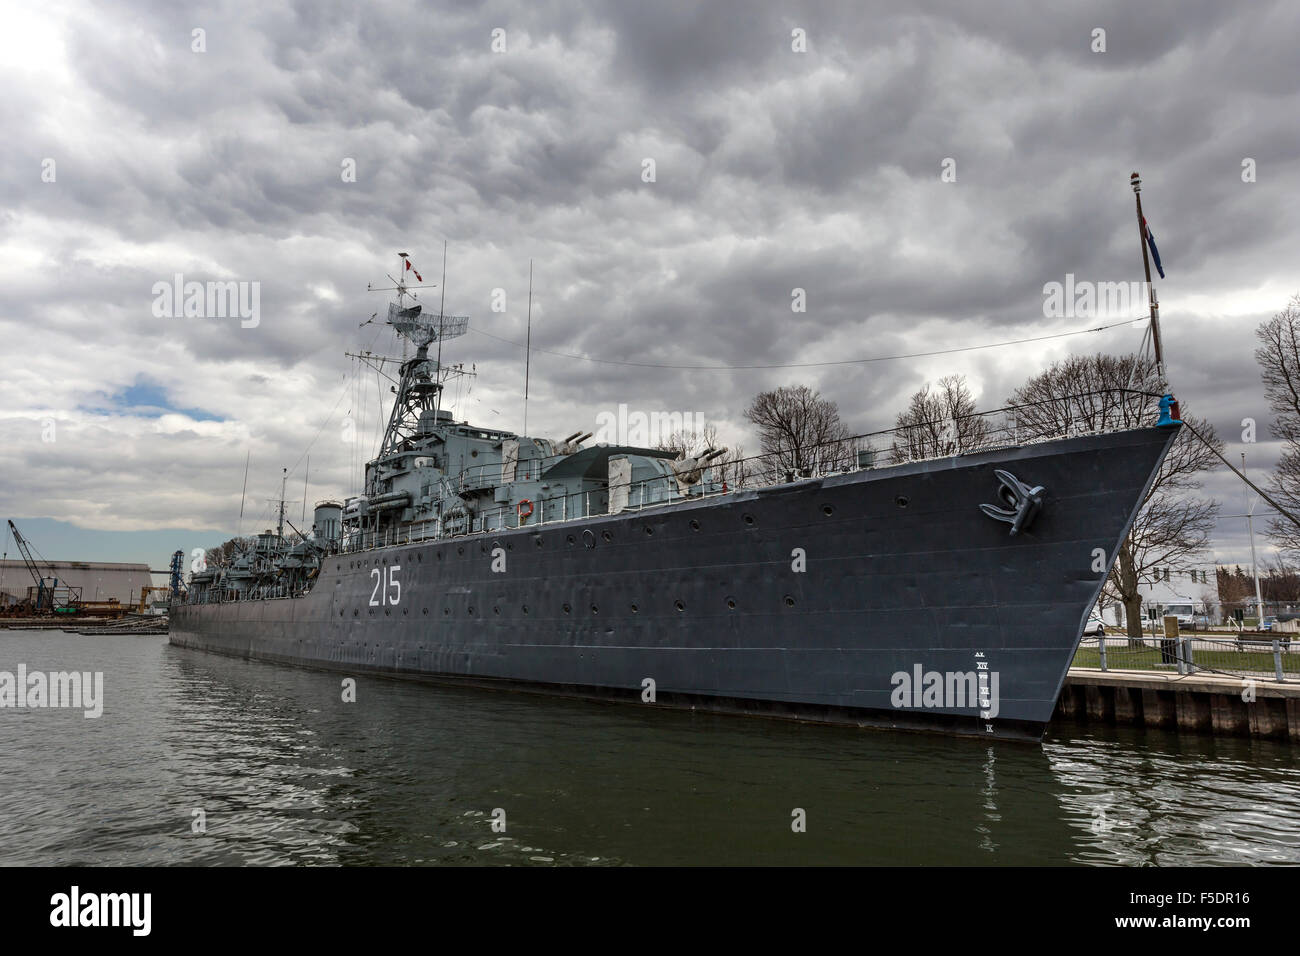 Legendary HMCS Haida, a Tribal class destroyer that served in the Second World War. - Stock Image